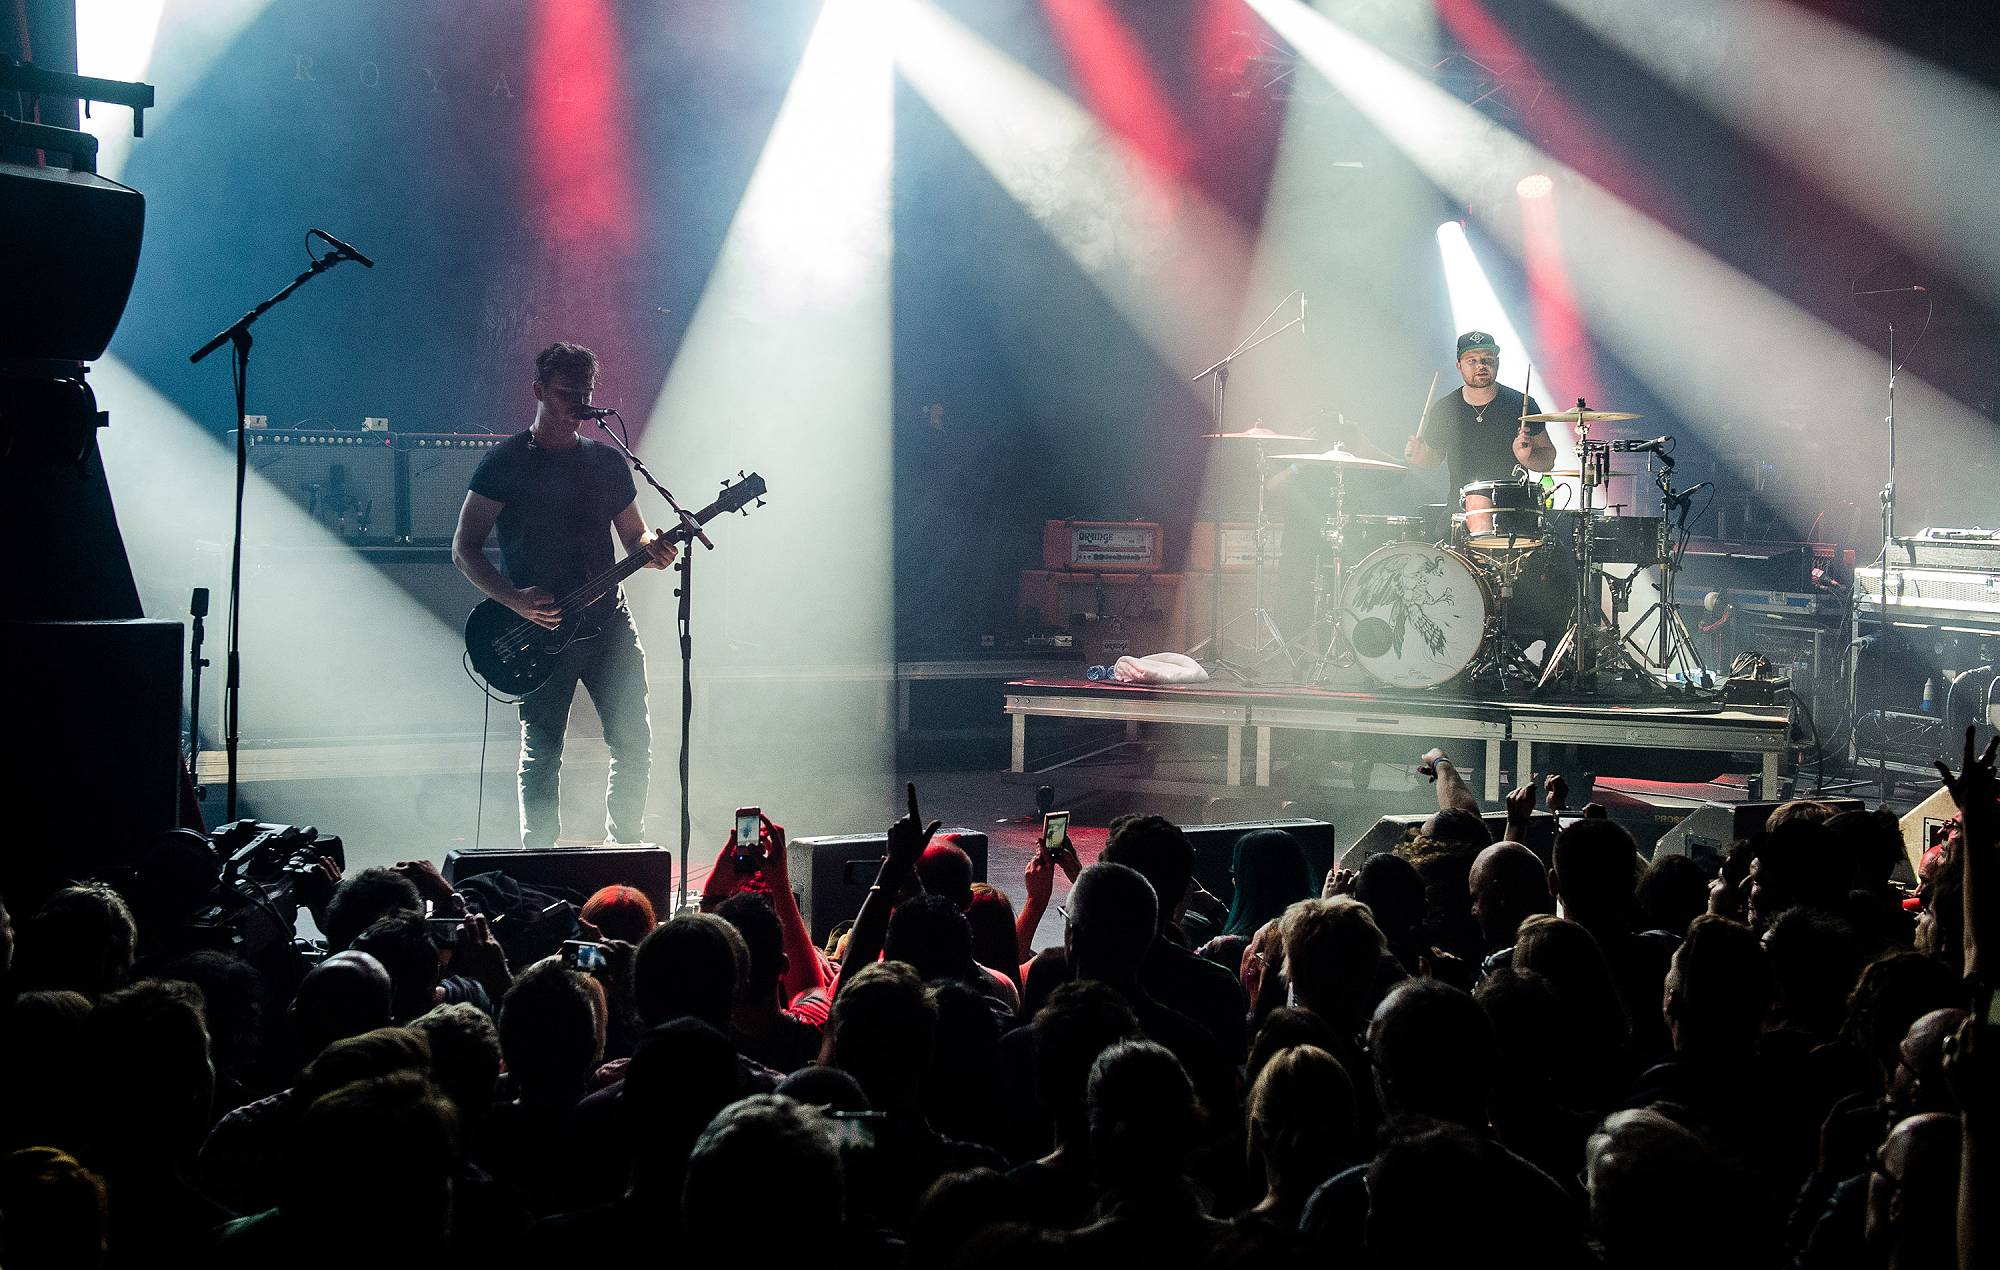 Royal Blood perform at La Cigale on November 16, 2014 in Paris, France. (Photo by David Wolff - Patrick/Redferns via Getty Images)